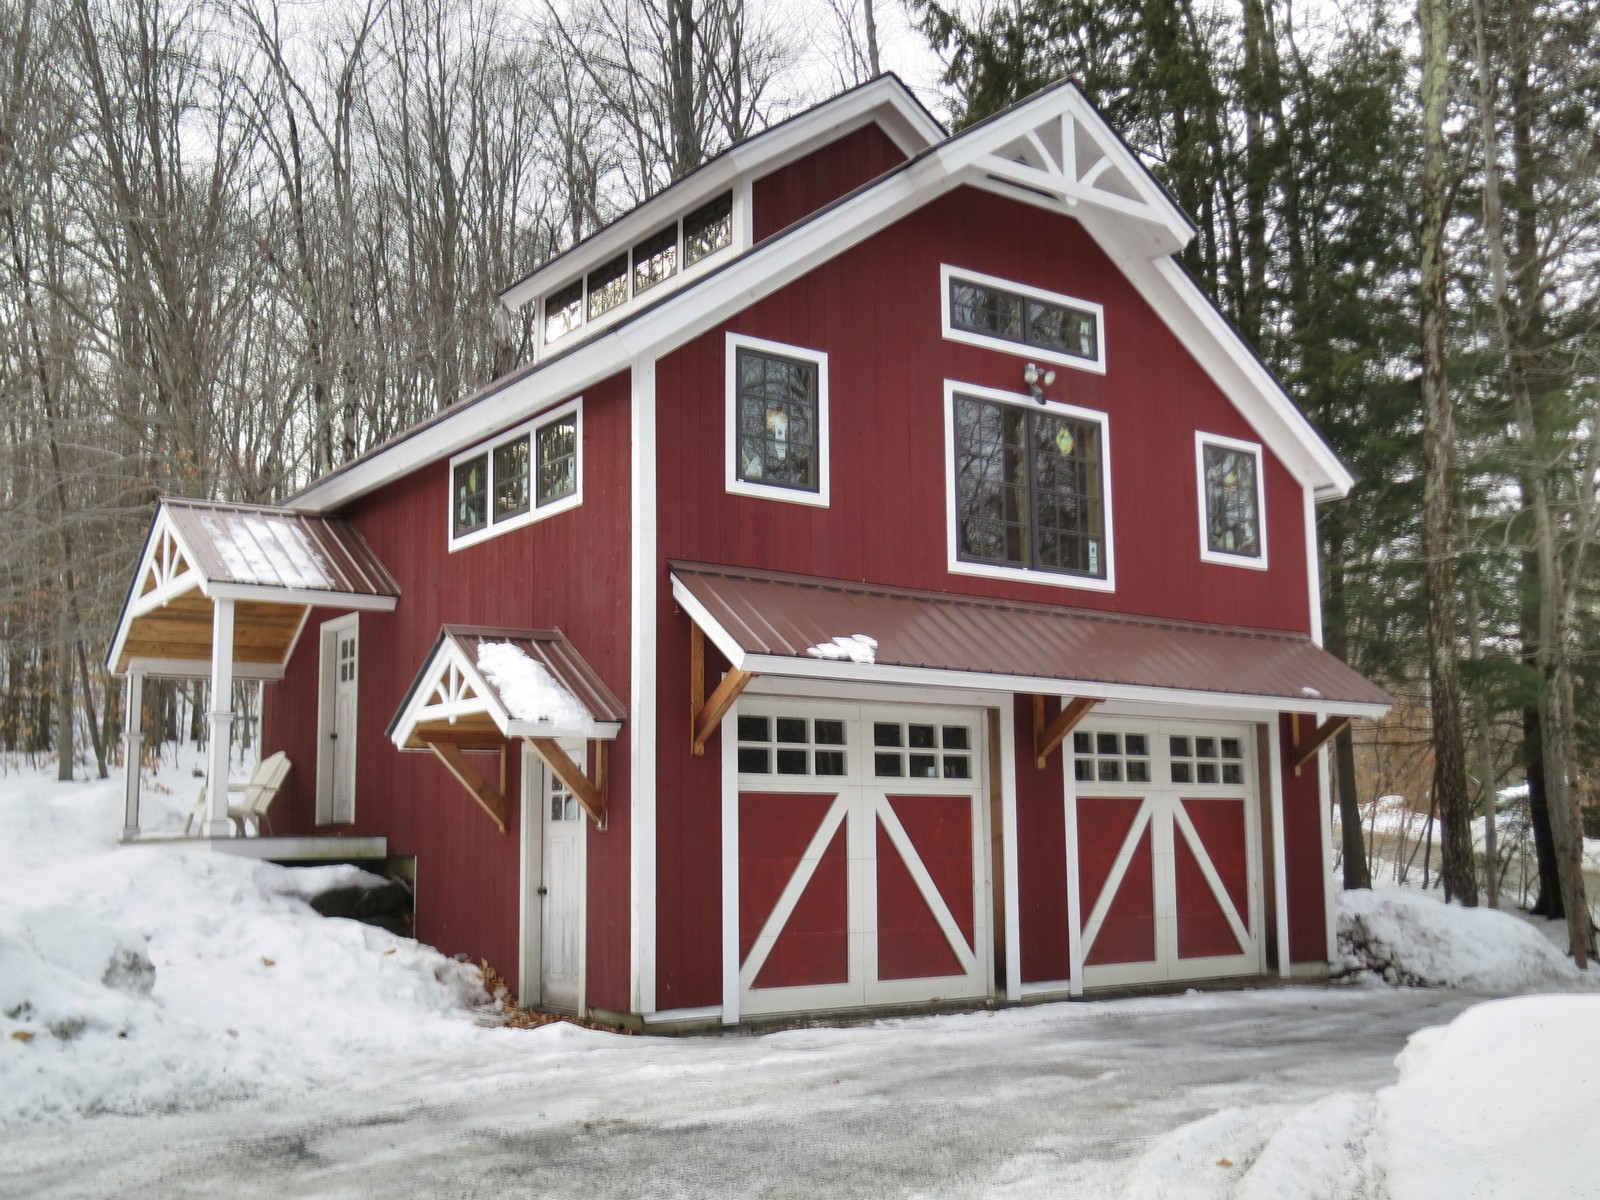 Villa per Vendita alle ore 308 Mountain Acres Road, Jamaica 308 Mountain Acres Rd Jamaica, Vermont, 05343 Stati Uniti